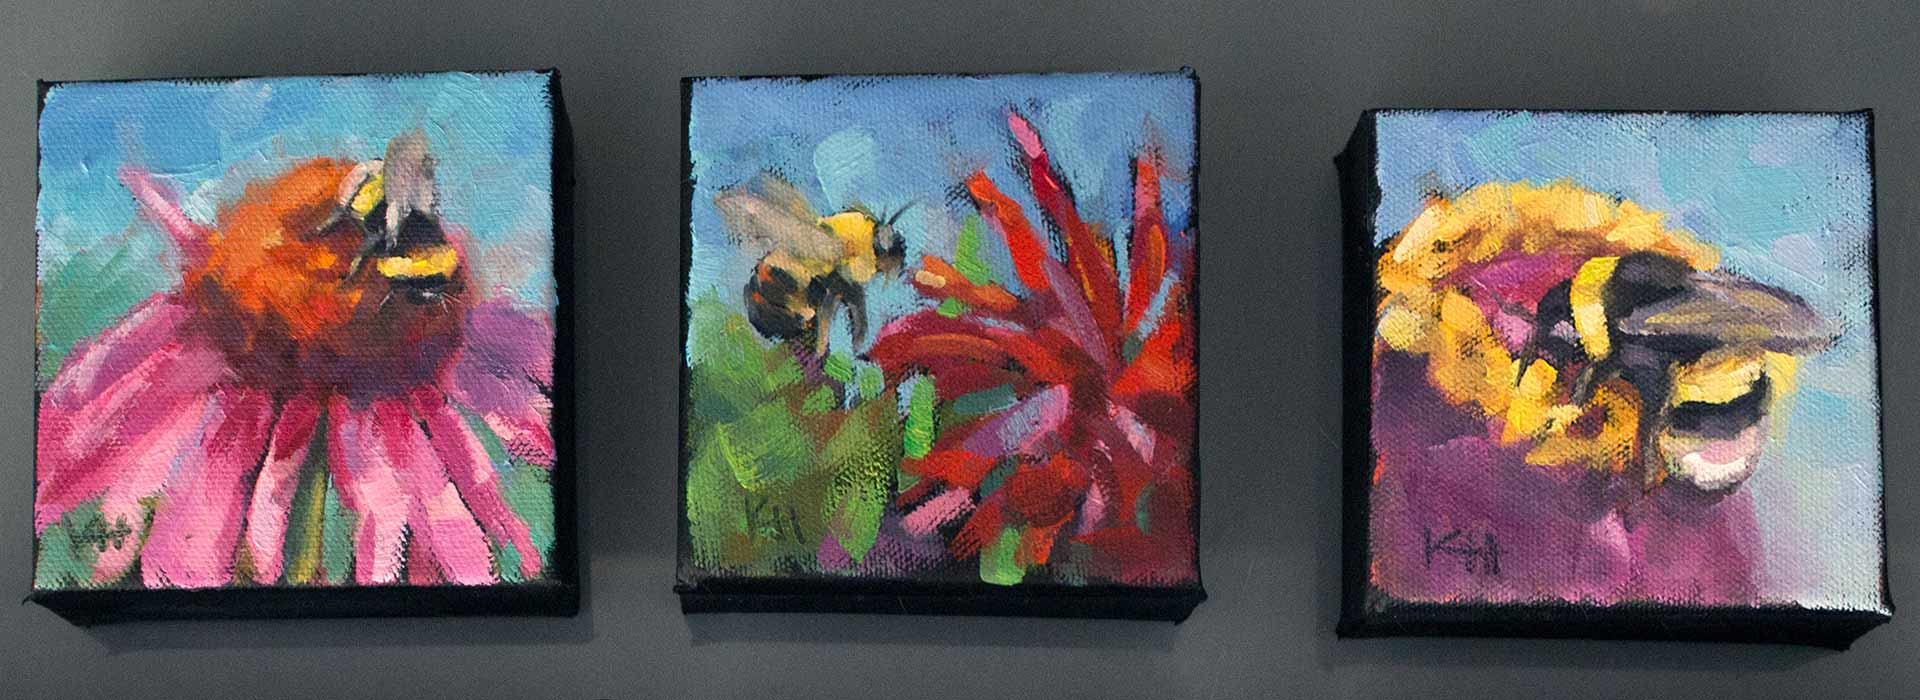 Enrich your life with art by krista hasson